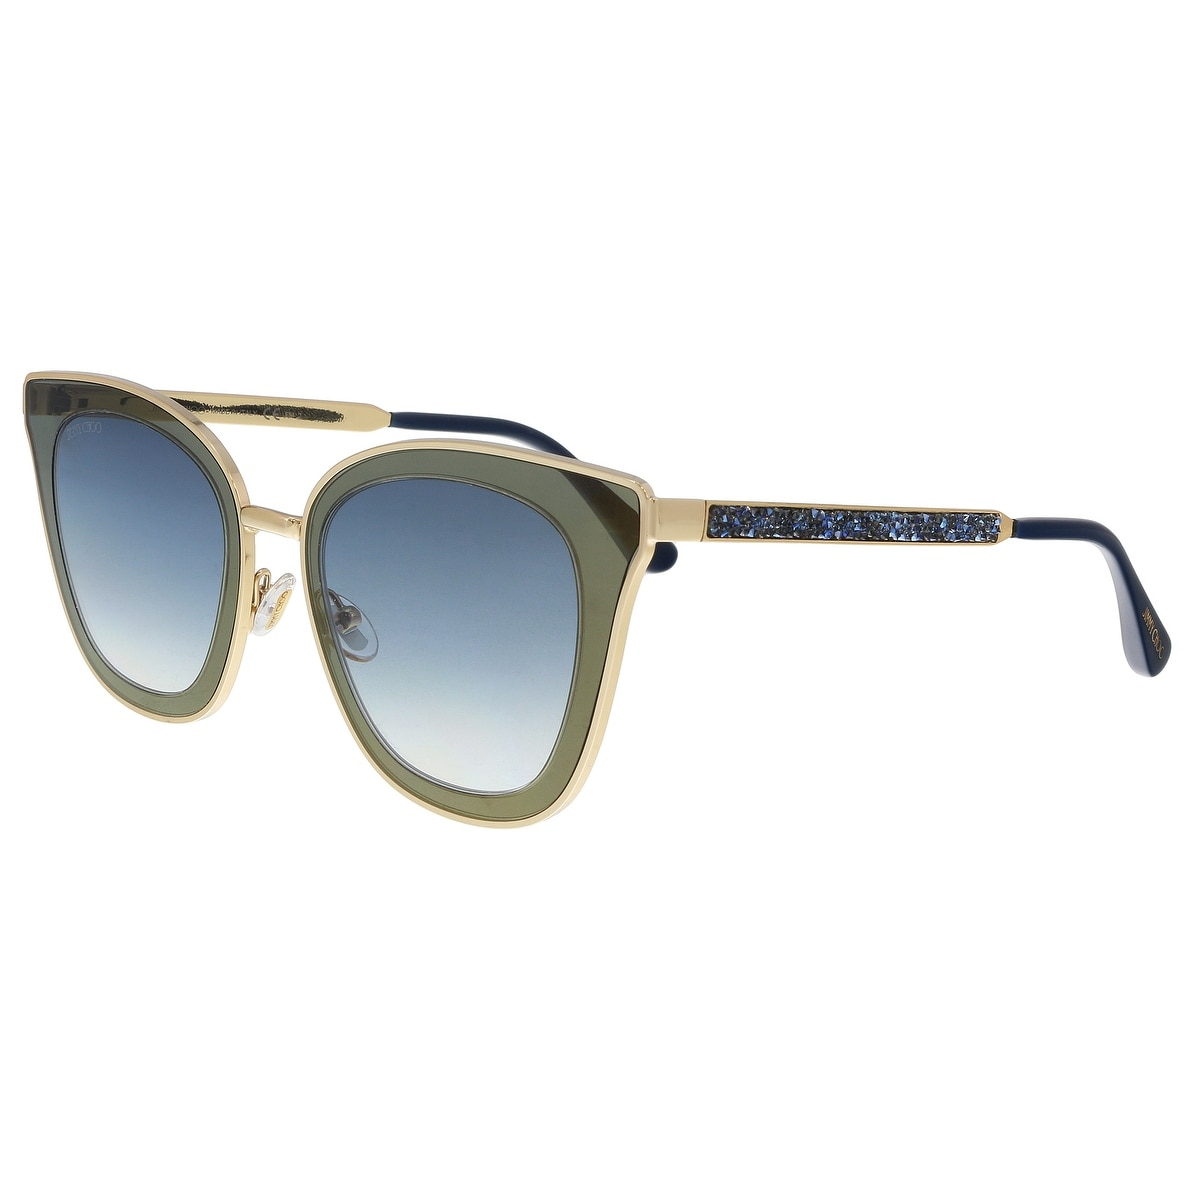 6591323bd808 Jimmy Choo Sunglasses | Shop our Best Clothing & Shoes Deals Online at  Overstock